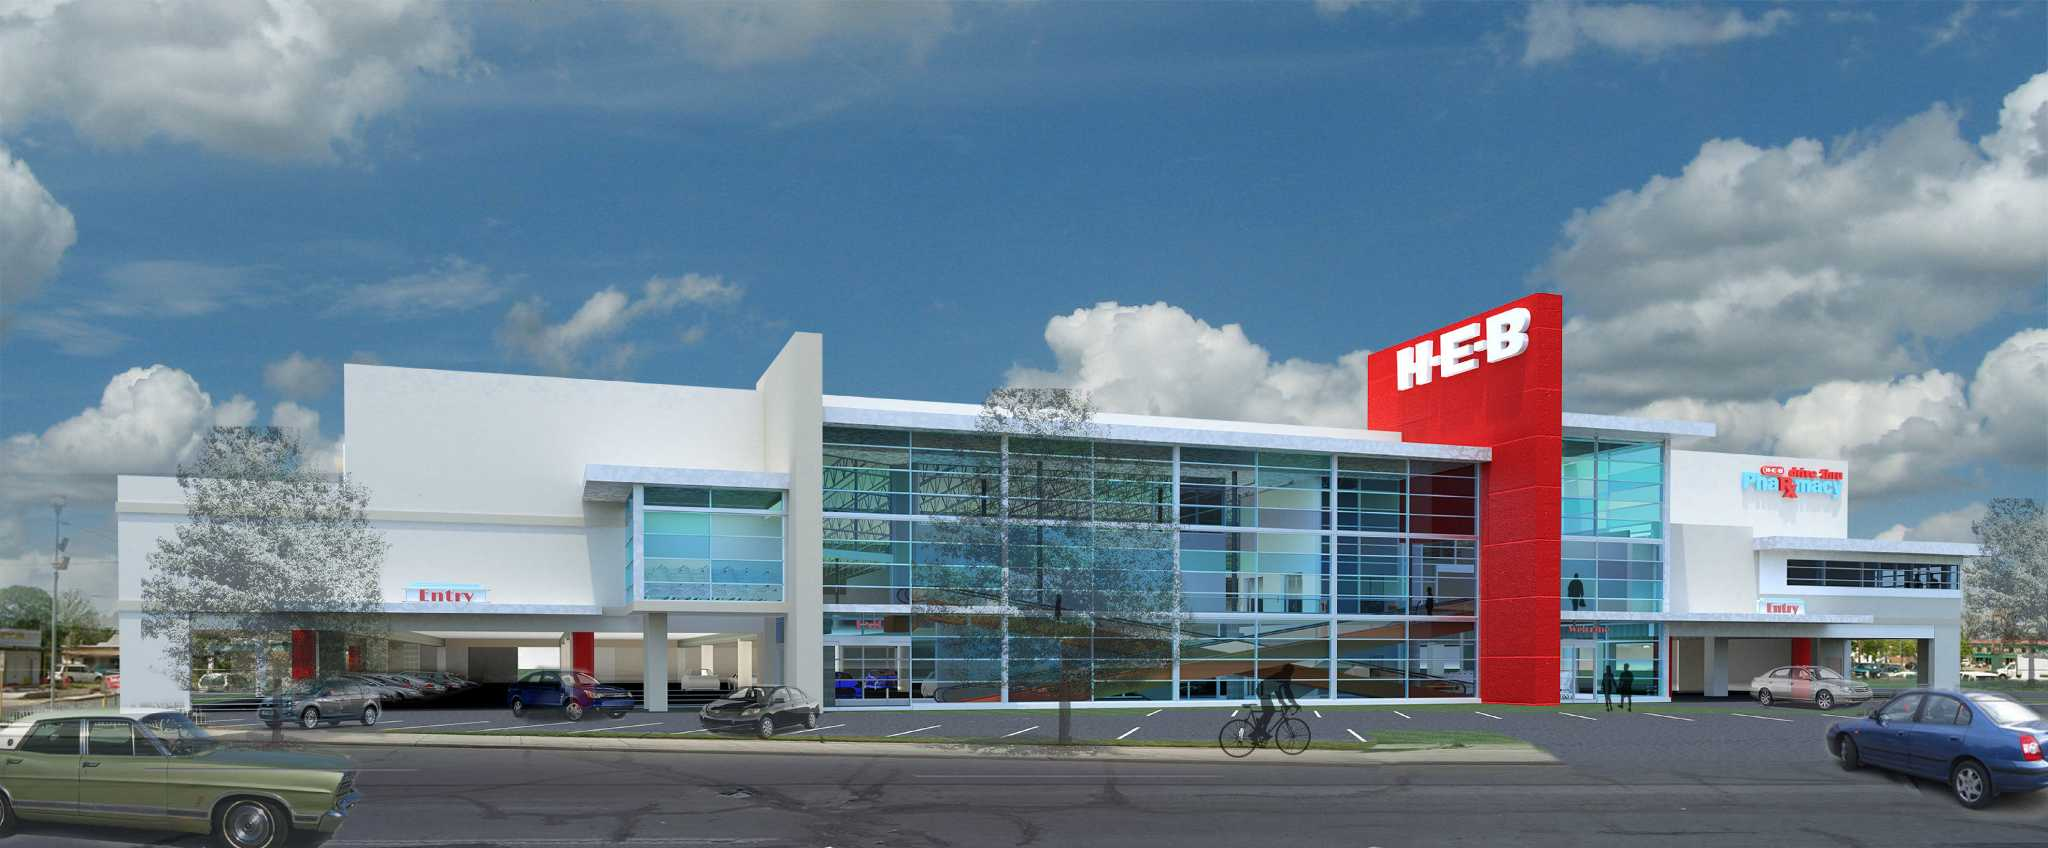 heb is the best store Bellaire to get a double-decker h-e-b iris chester bemoaned the eventual loss of the best chinese restaurant but he said a larger store will keep h-e-b.